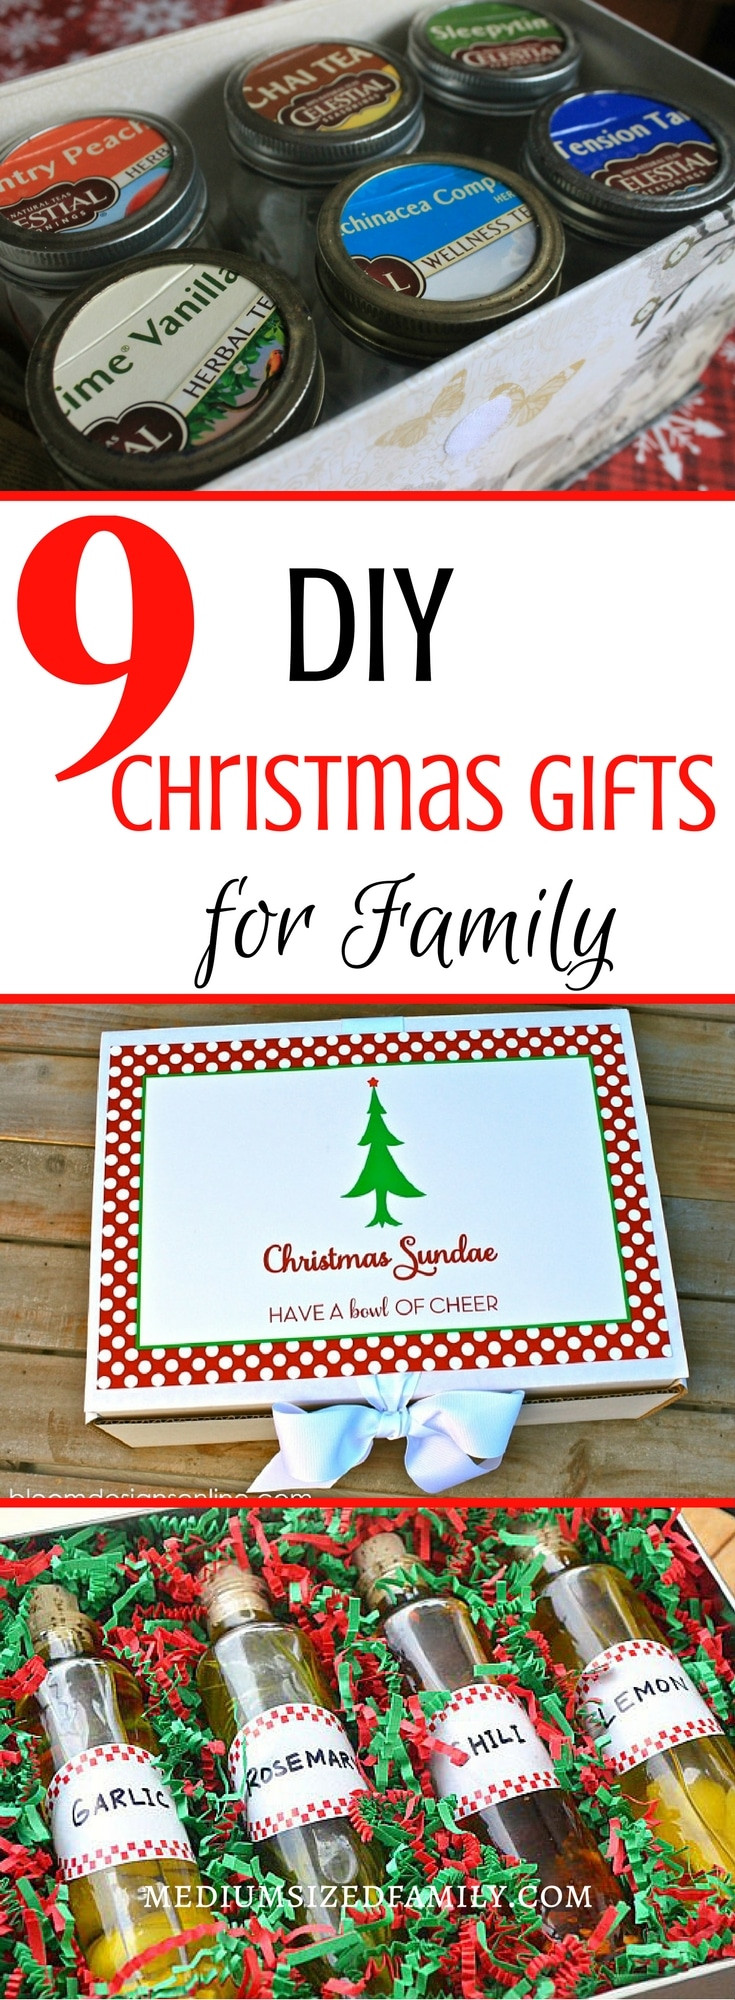 Best ideas about DIY Gifts For Family . Save or Pin 7 Ways to Pile Up Christmas Money Do It Yourself Now.